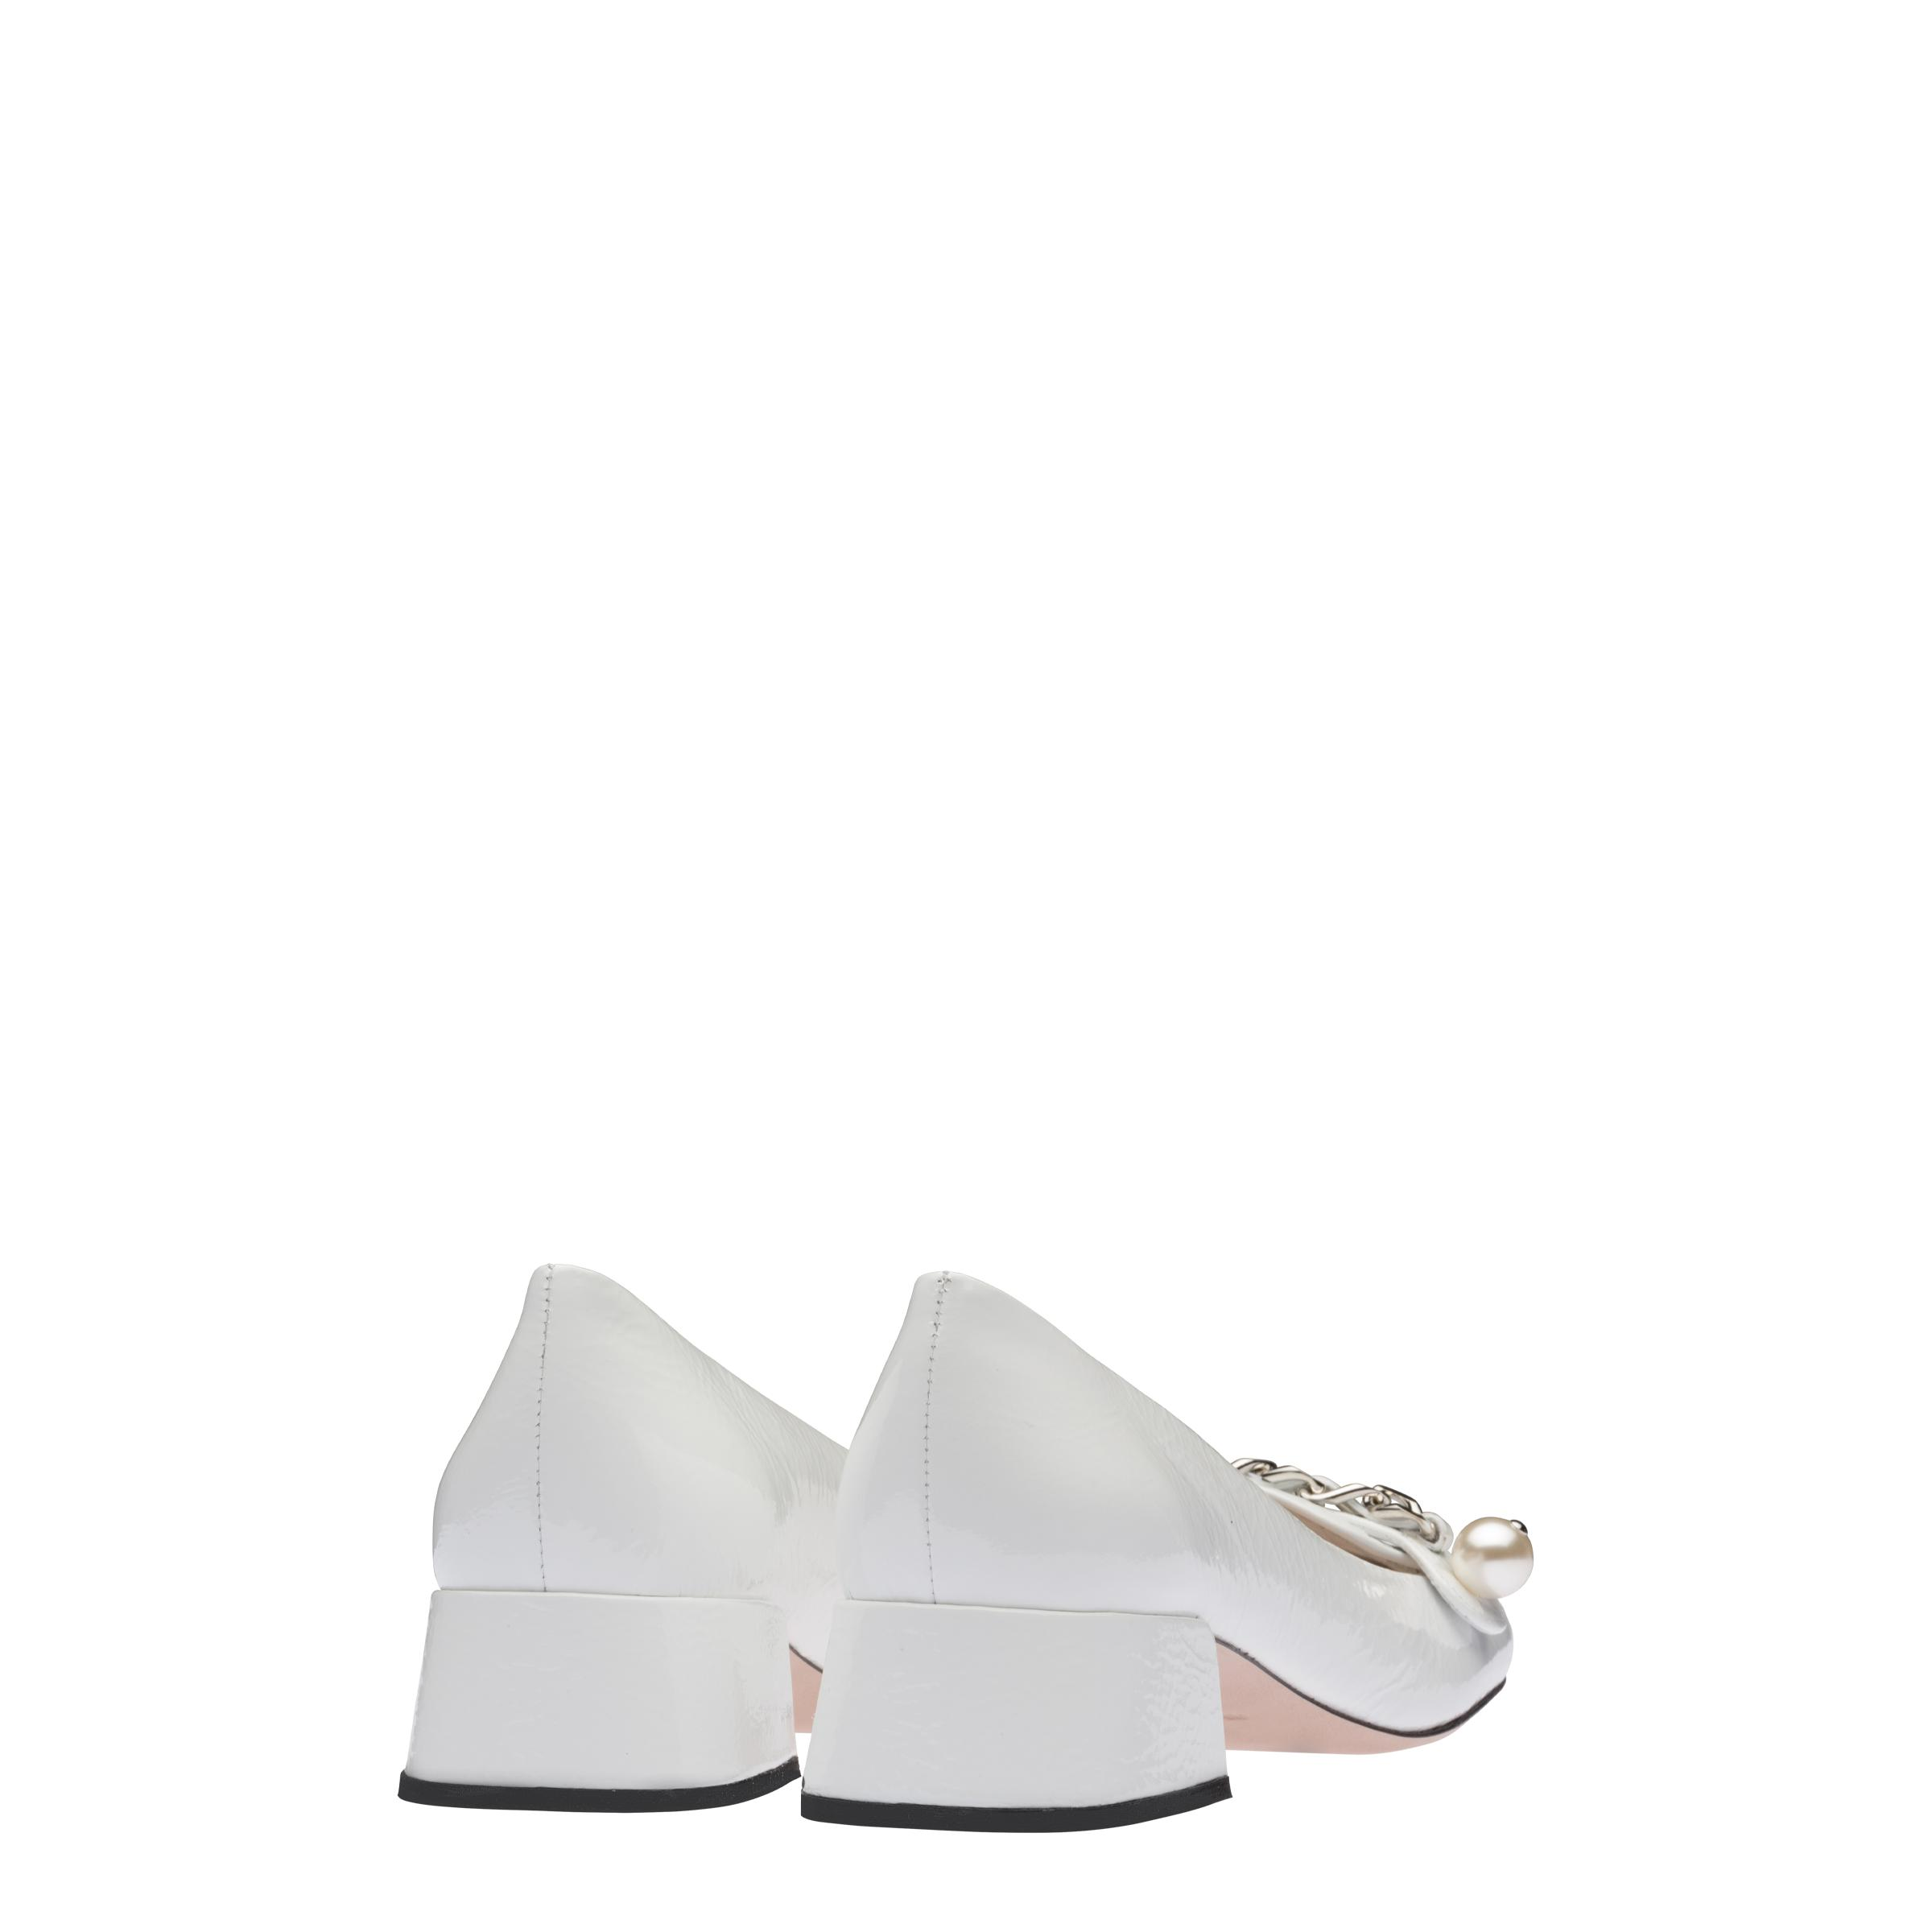 Patent Leather Loafers Women White 3